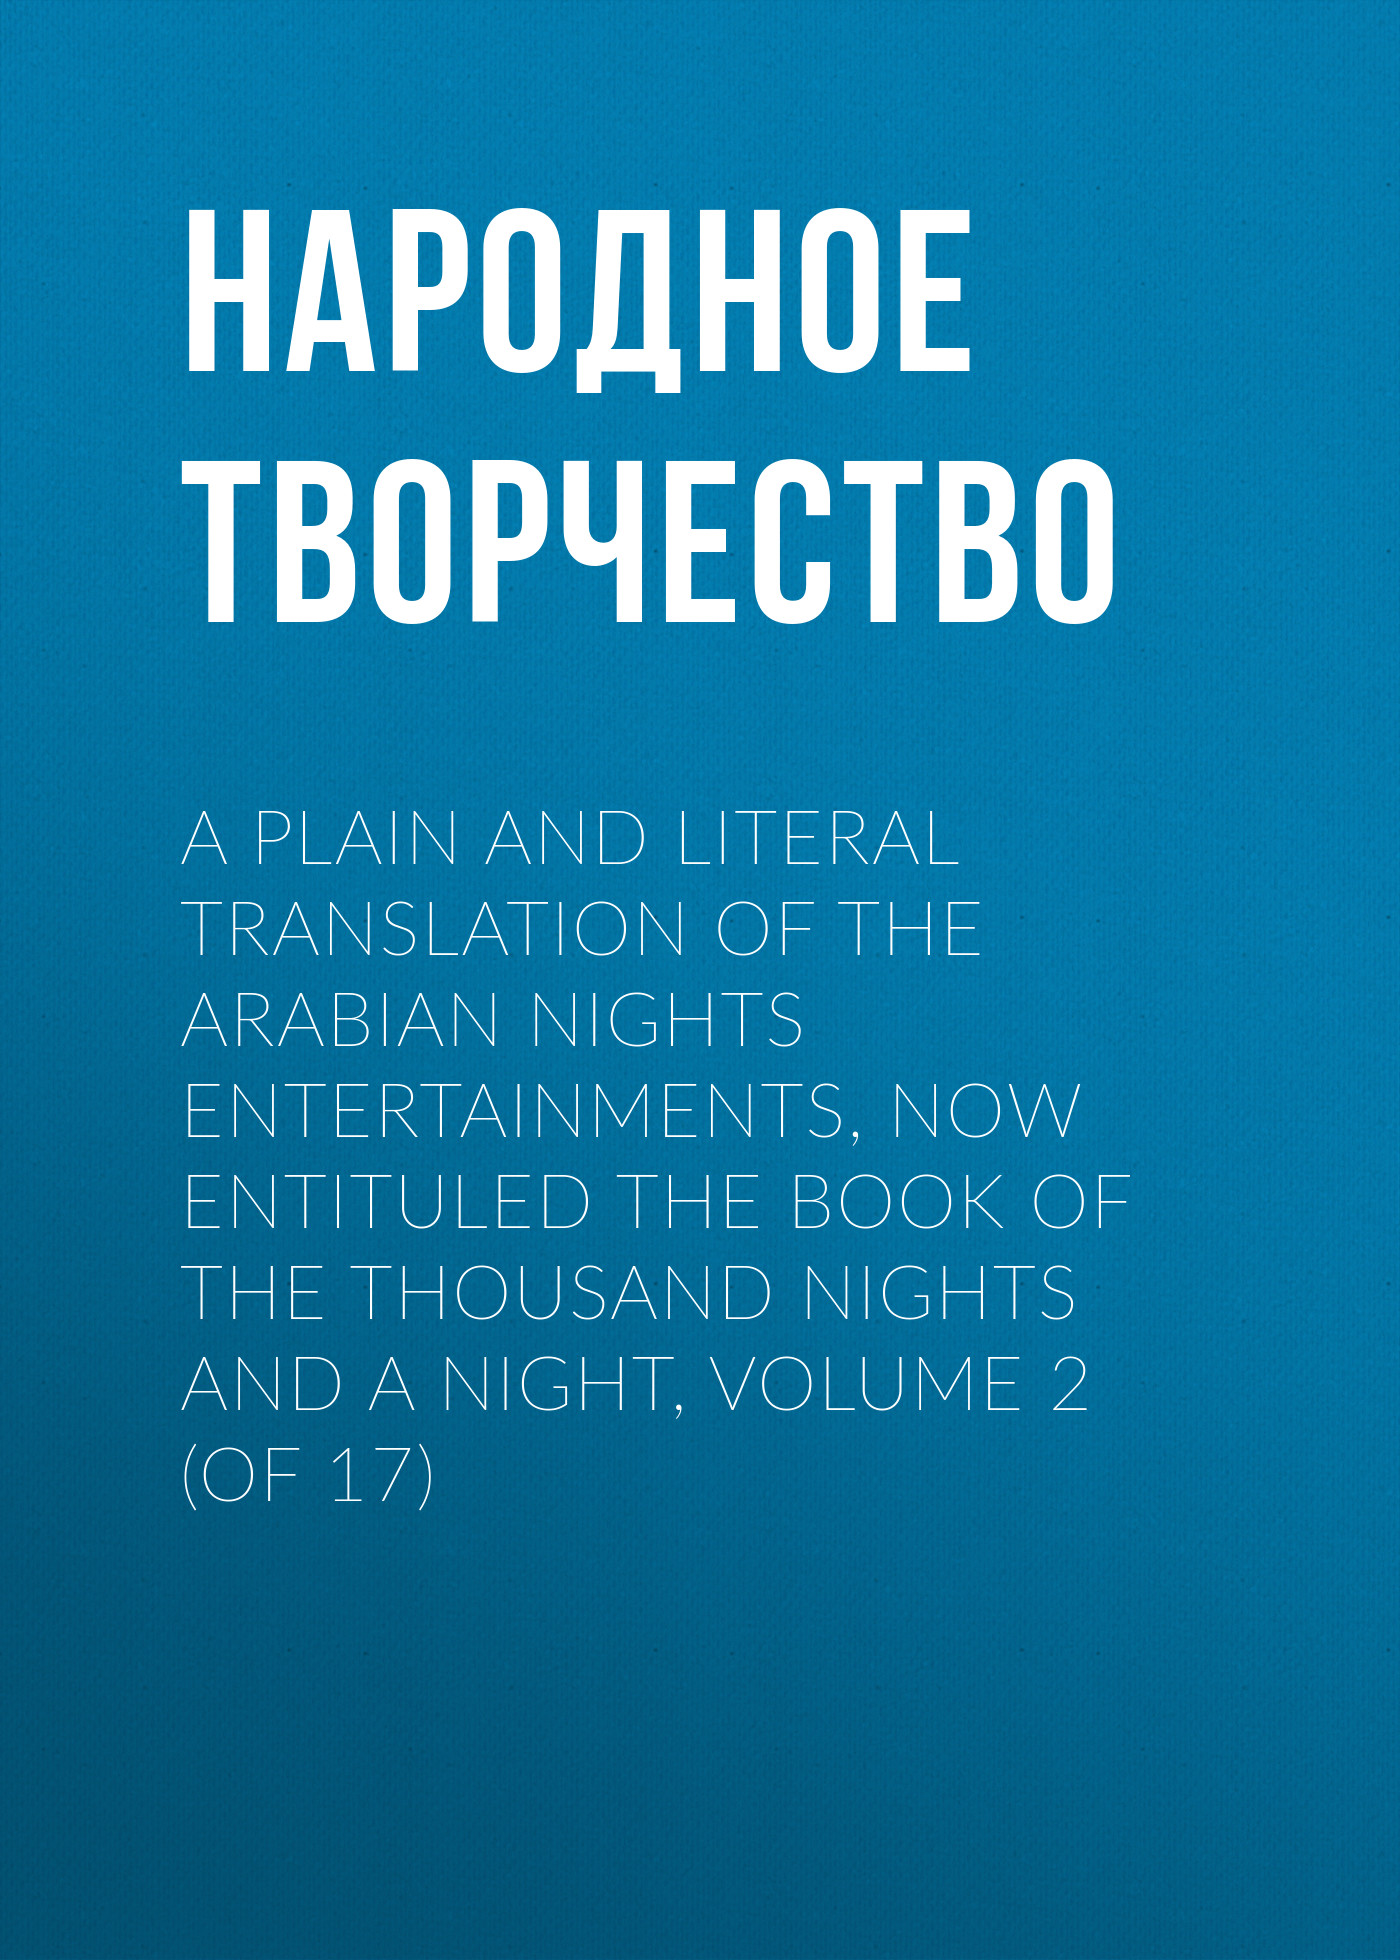 Народное творчество A plain and literal translation of the Arabian nights entertainments, now entituled The Book of the Thousand Nights and a Night, Volume 2 (of 17) народное творчество a plain and literal translation of the arabian nights entertainments now entituled the book of the thousand nights and a night volume 6 of 17